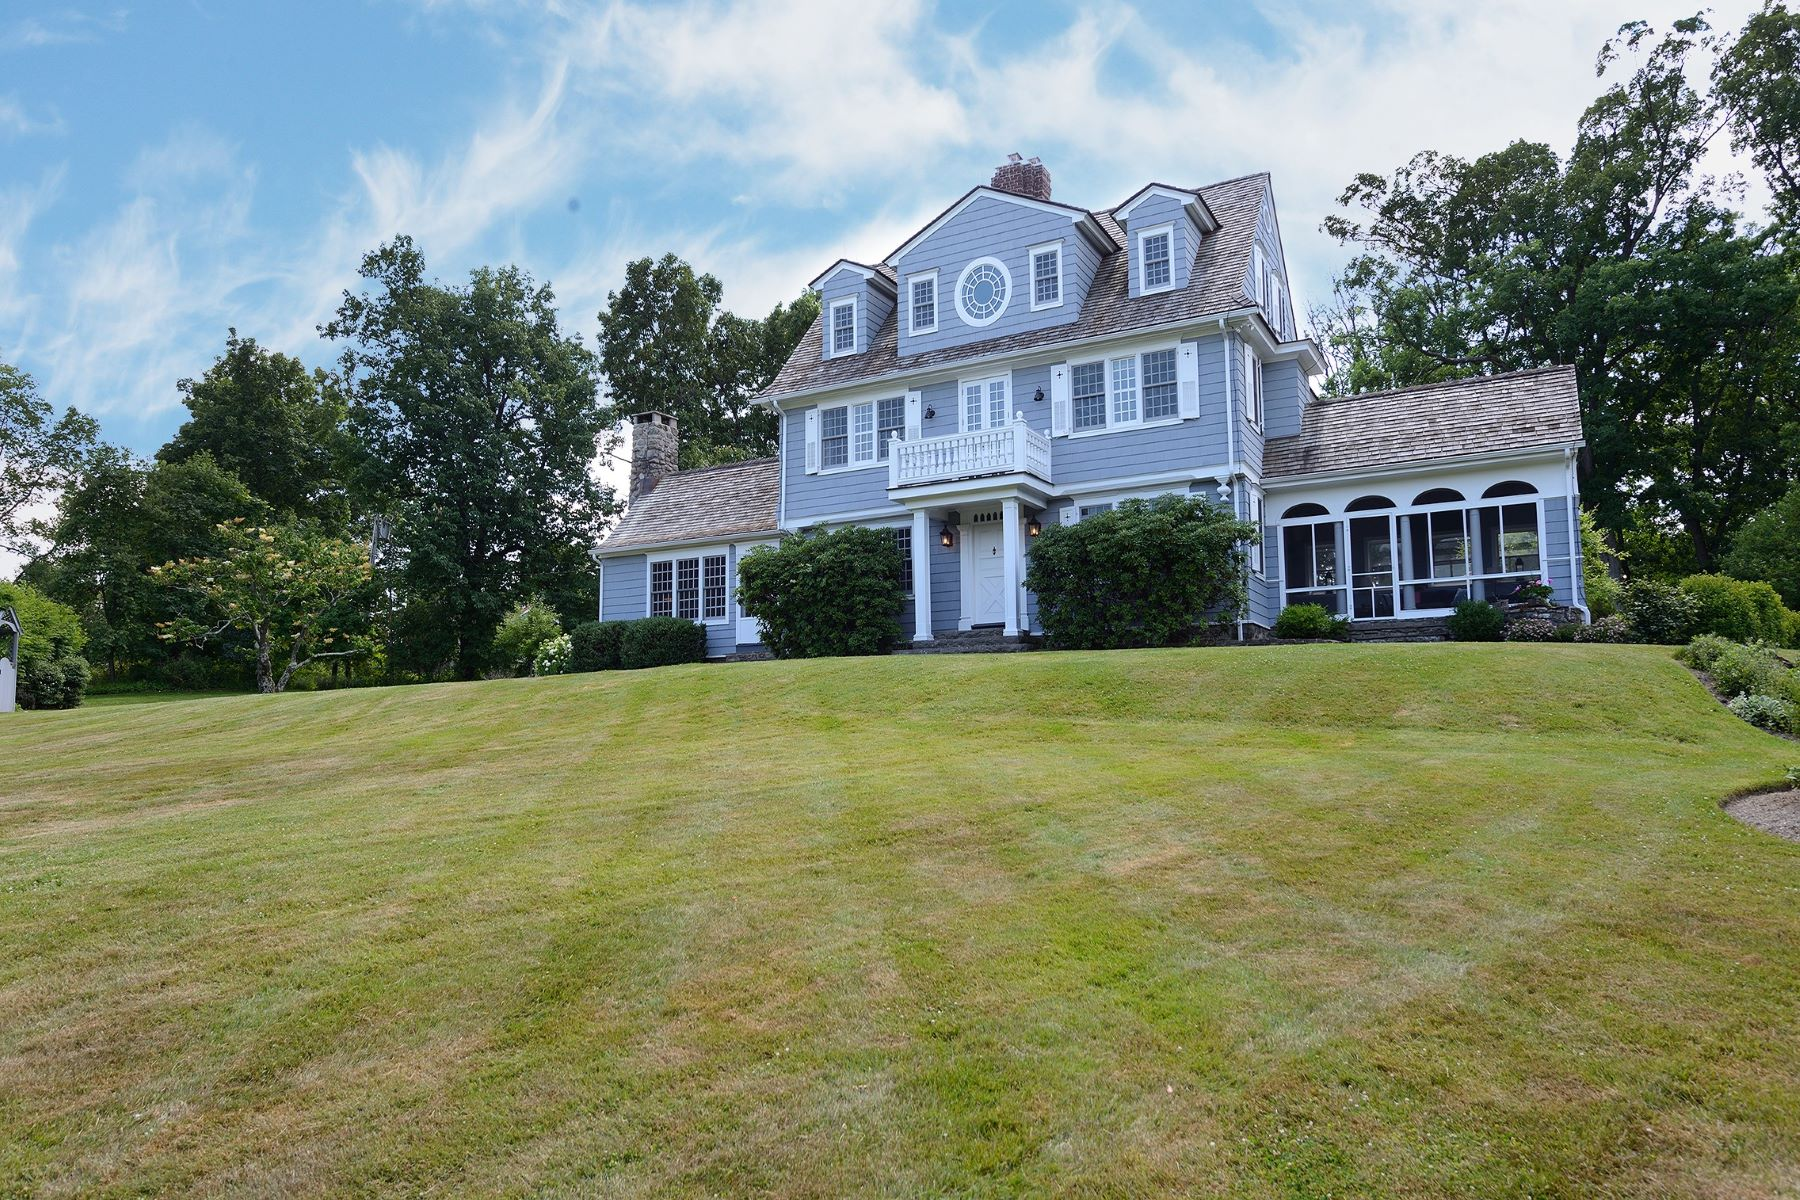 Single Family Home for Sale at Vintage Masterpiece Restored 187 County Highway 105 Woodbury (Highland Mills), New York 10930 United States